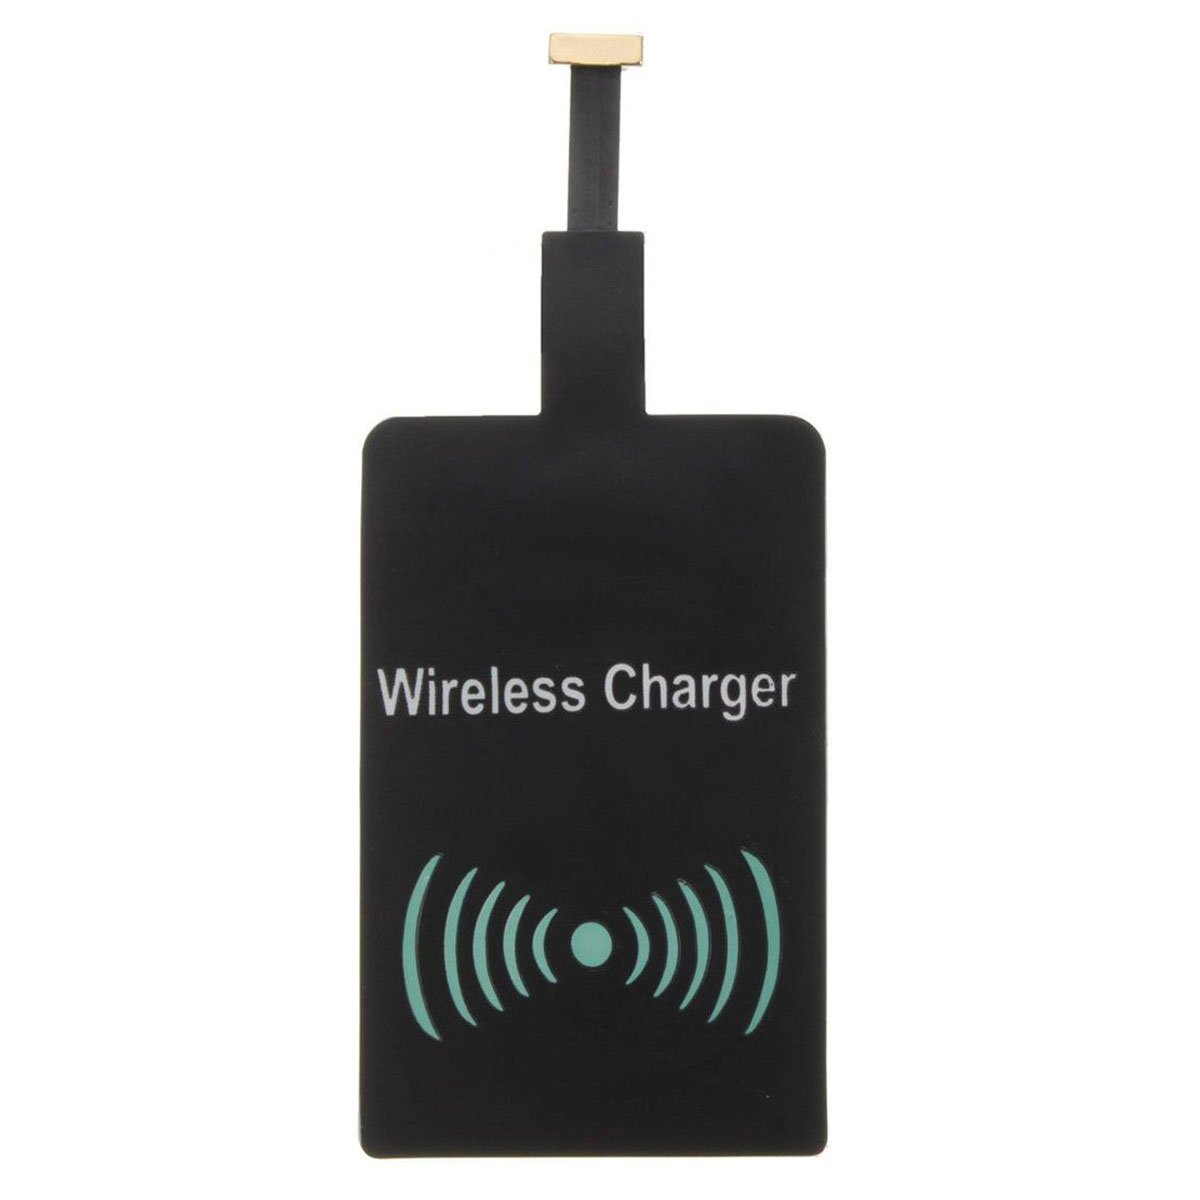 SODIAL Mirco USB Qi Wireless Charger Charging Receiver Chip Android Cellphone Black, Narrow side upwards by SODIAL (Image #3)